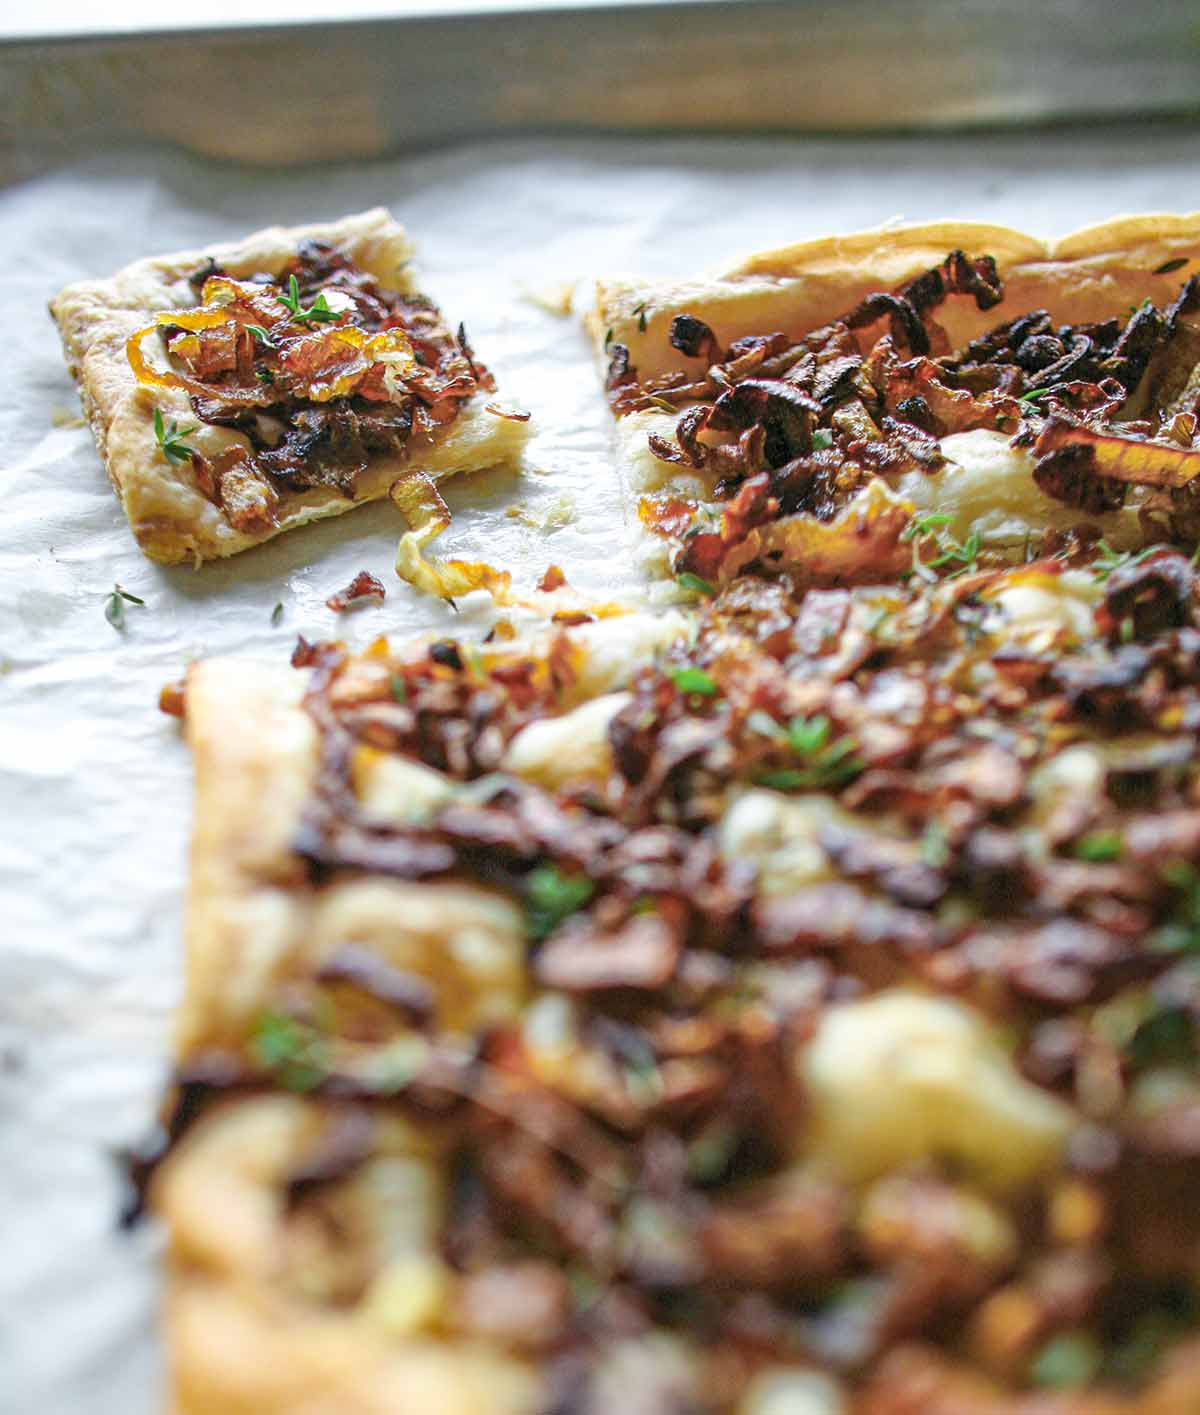 A sheet pan with an onion thyme tart on it, covered with cooked onions, thyme on a puff pastry crust